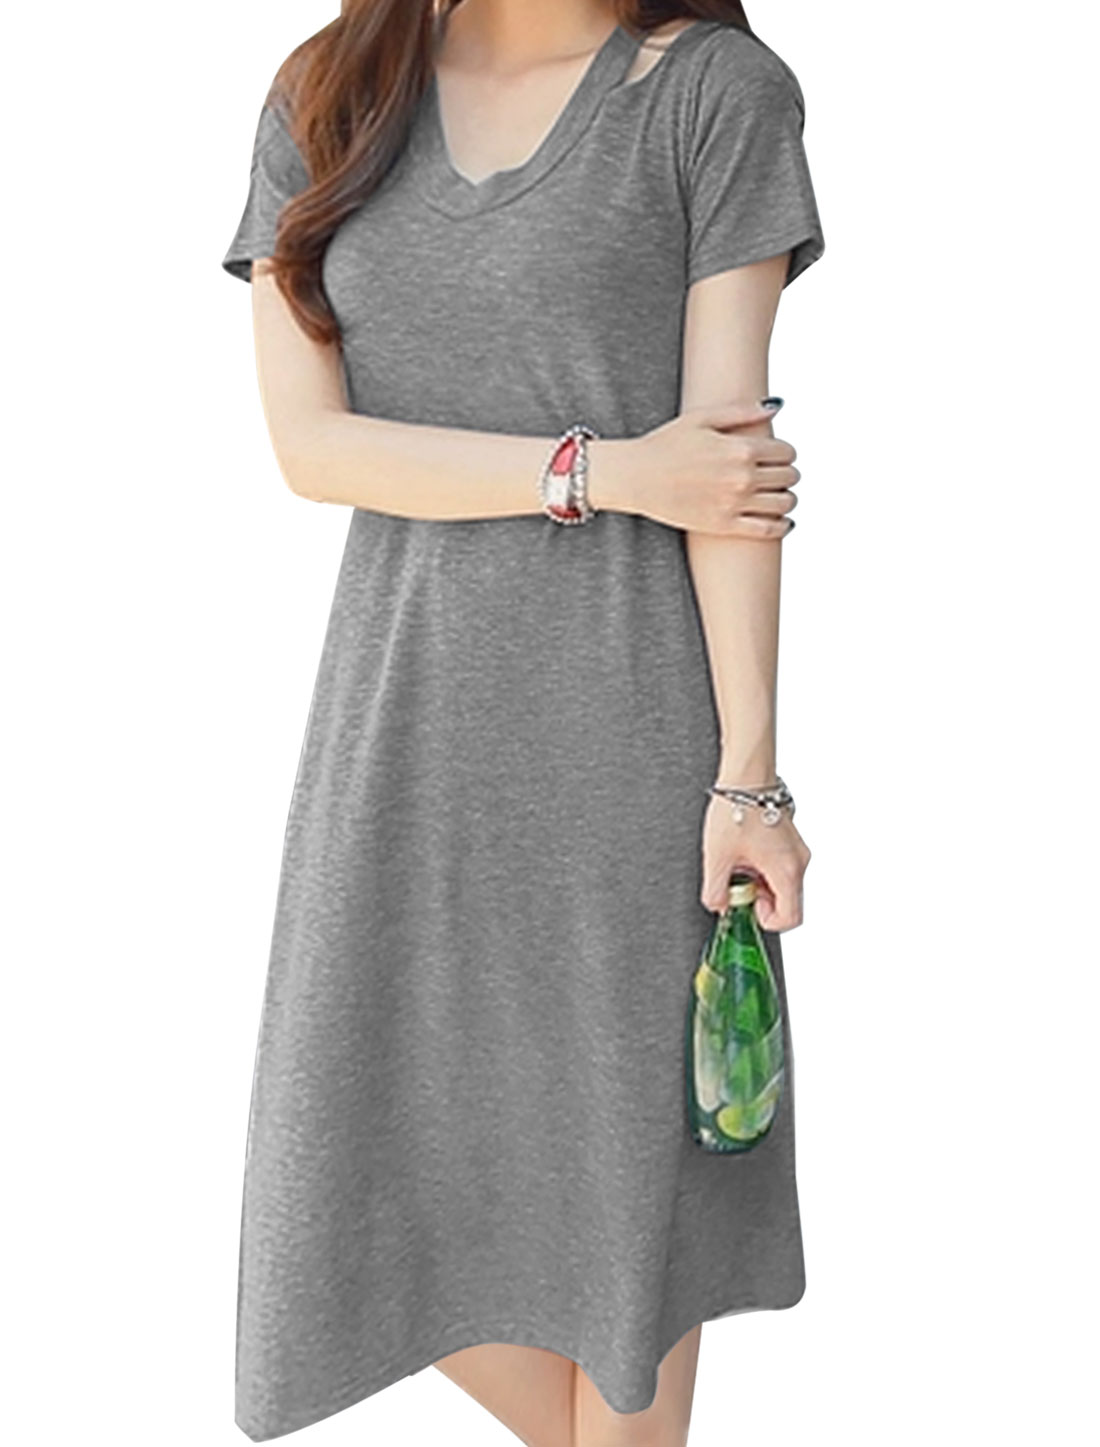 Ladies Short Sleeve Round Neck Cut Out Unlined Casual Dress Dark Gray M